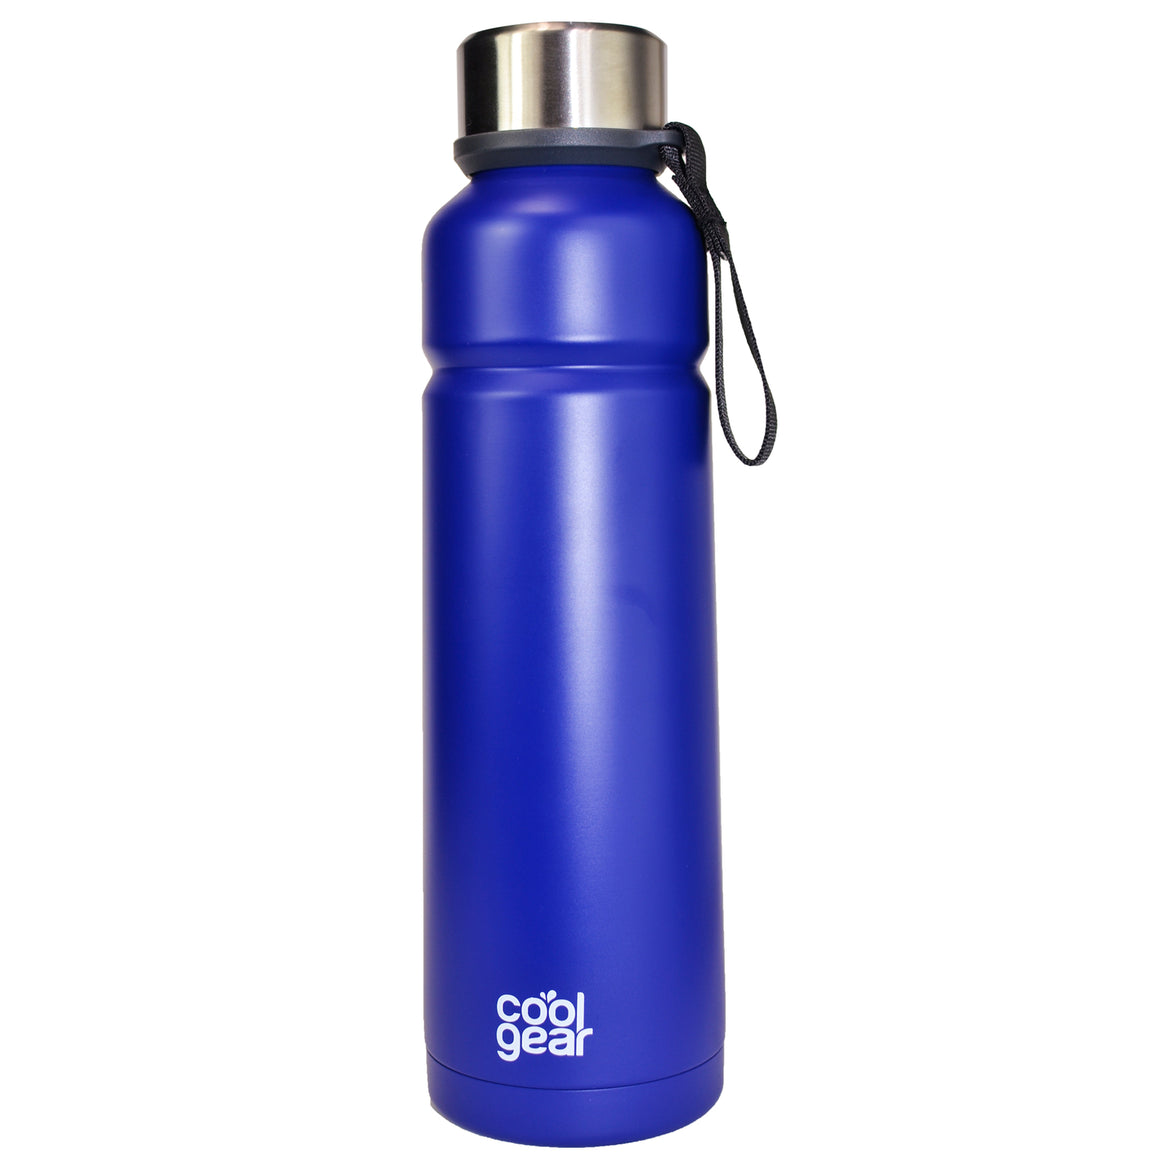 Bright Pink Cayambe 24 Oz Double Wall Water Bottle at Cool Gear Water Bottles,Stainless Steel